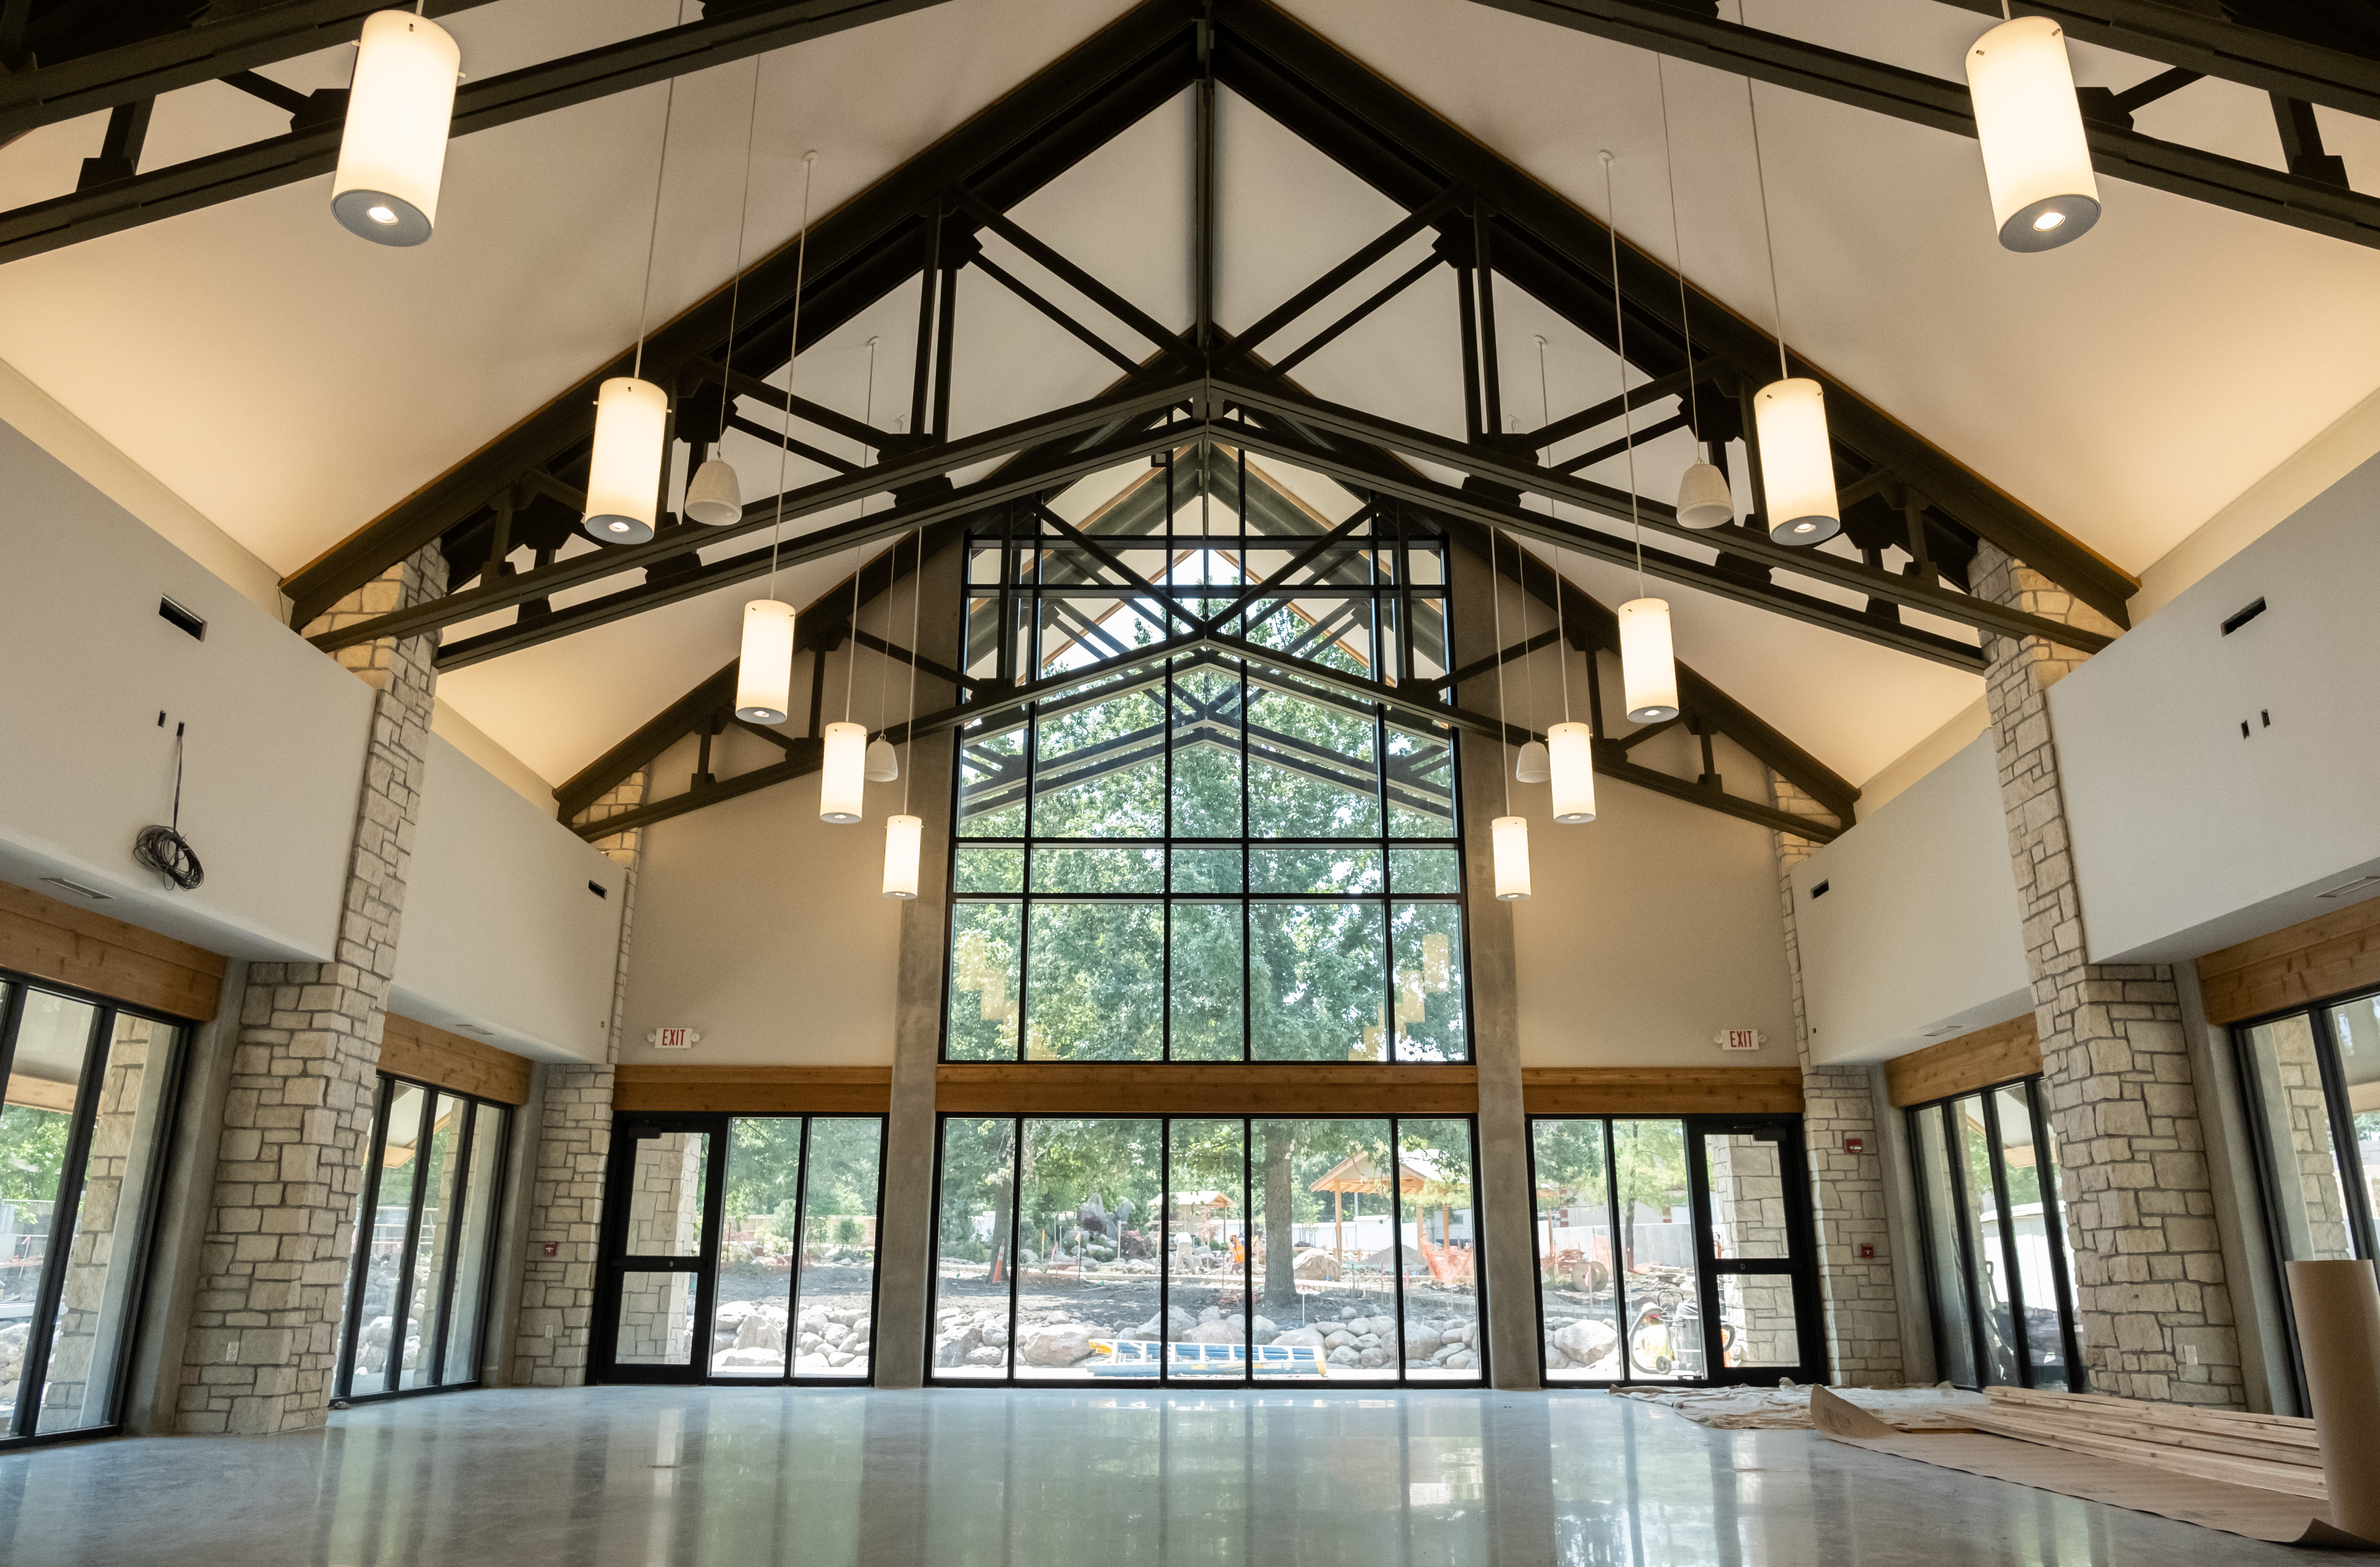 interior of venue with tall ceiling and large glass windows at Topeka Zoo